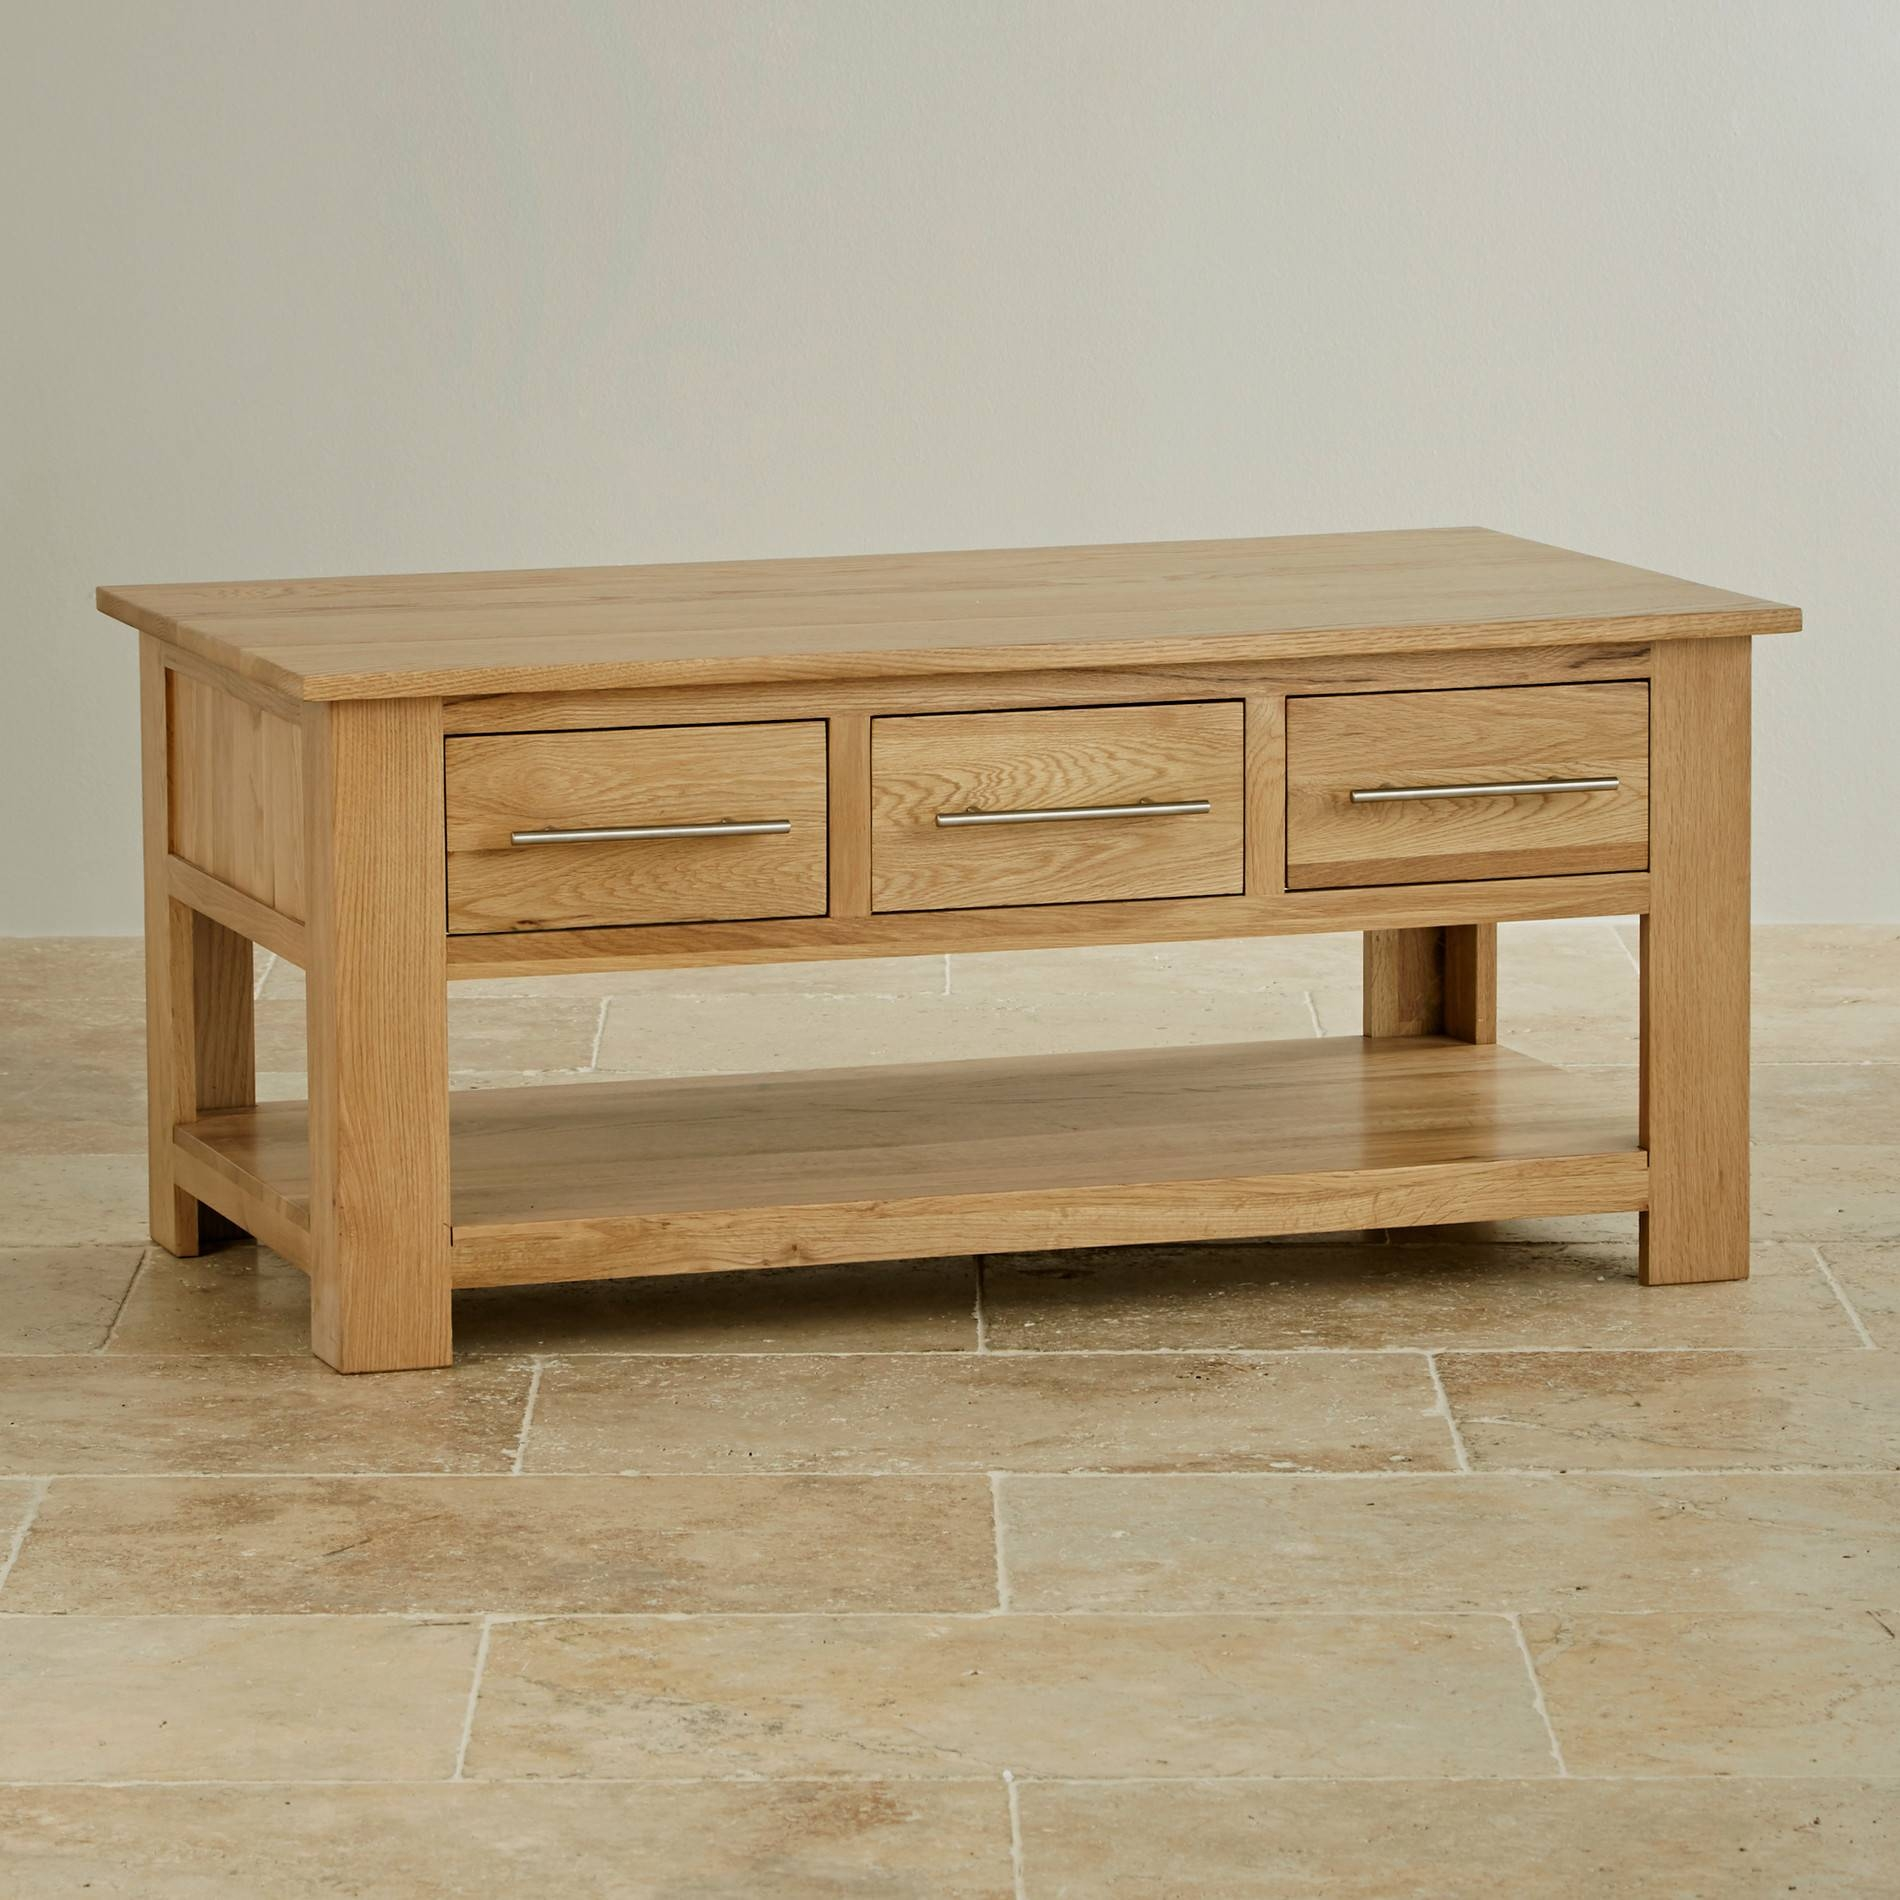 Displaying s of Light Oak Coffee Tables With Drawers View 22